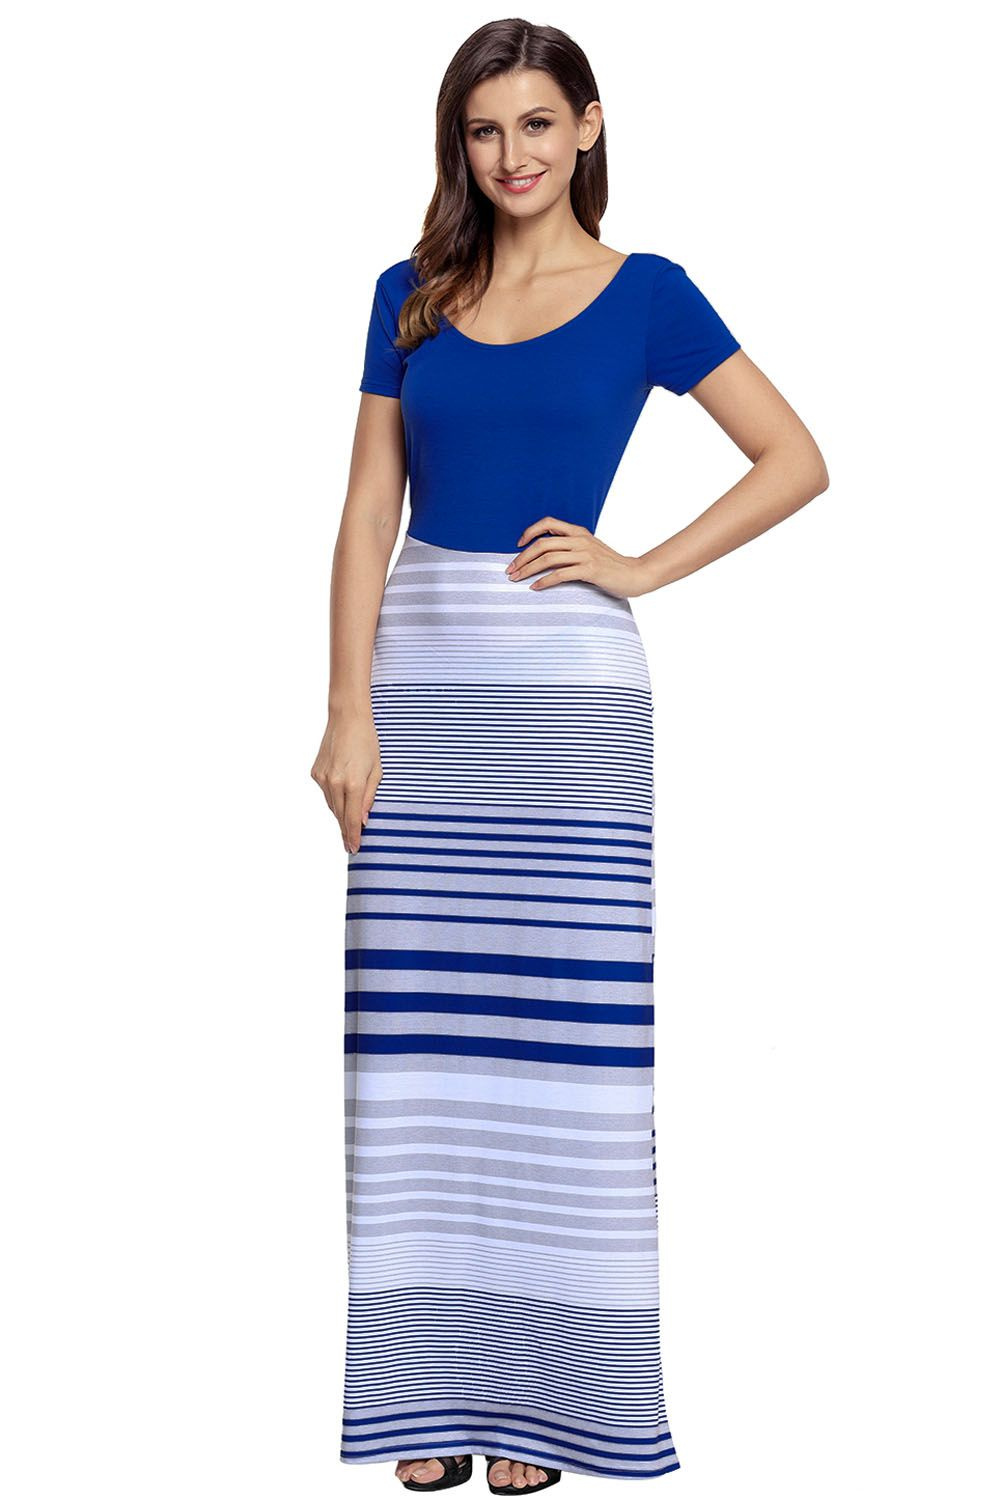 Navy Blue Crisscross Back Muliticolor Maxi Dress #navyblueshortdress